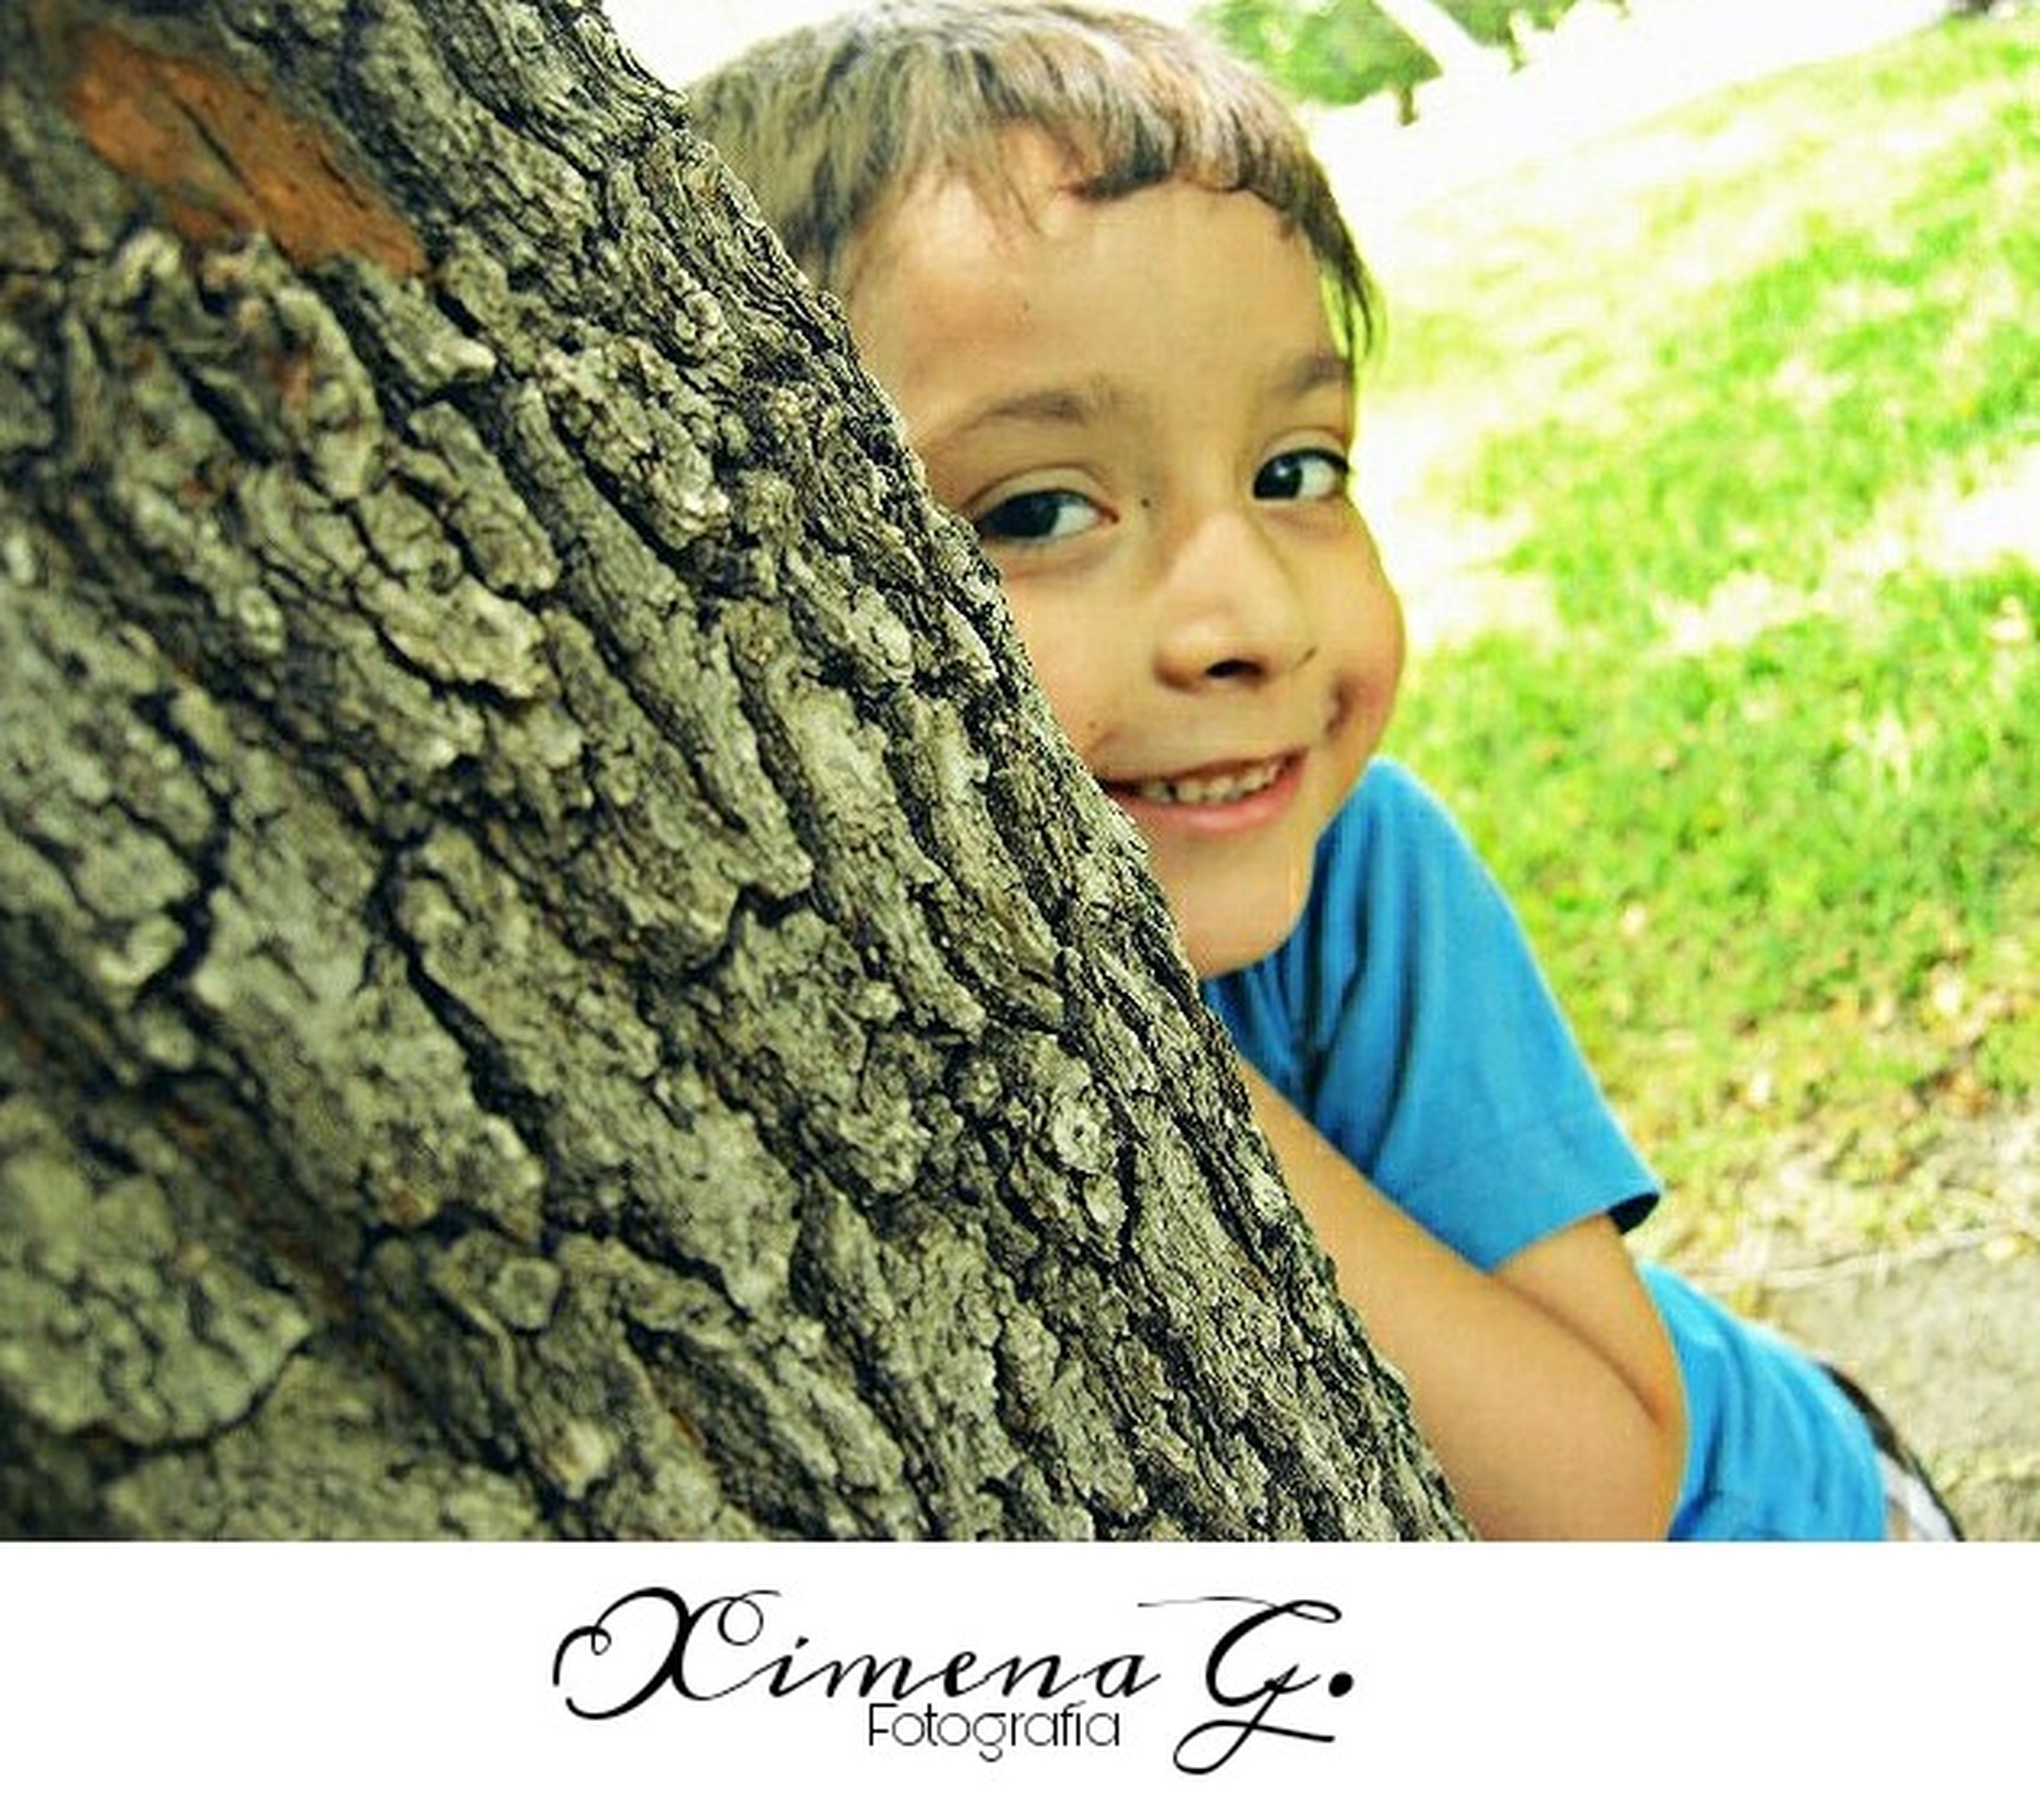 tree trunk, tree, childhood, boys, casual clothing, one person, day, outdoors, holding, real people, smiling, happiness, portrait, one boy only, nature, people